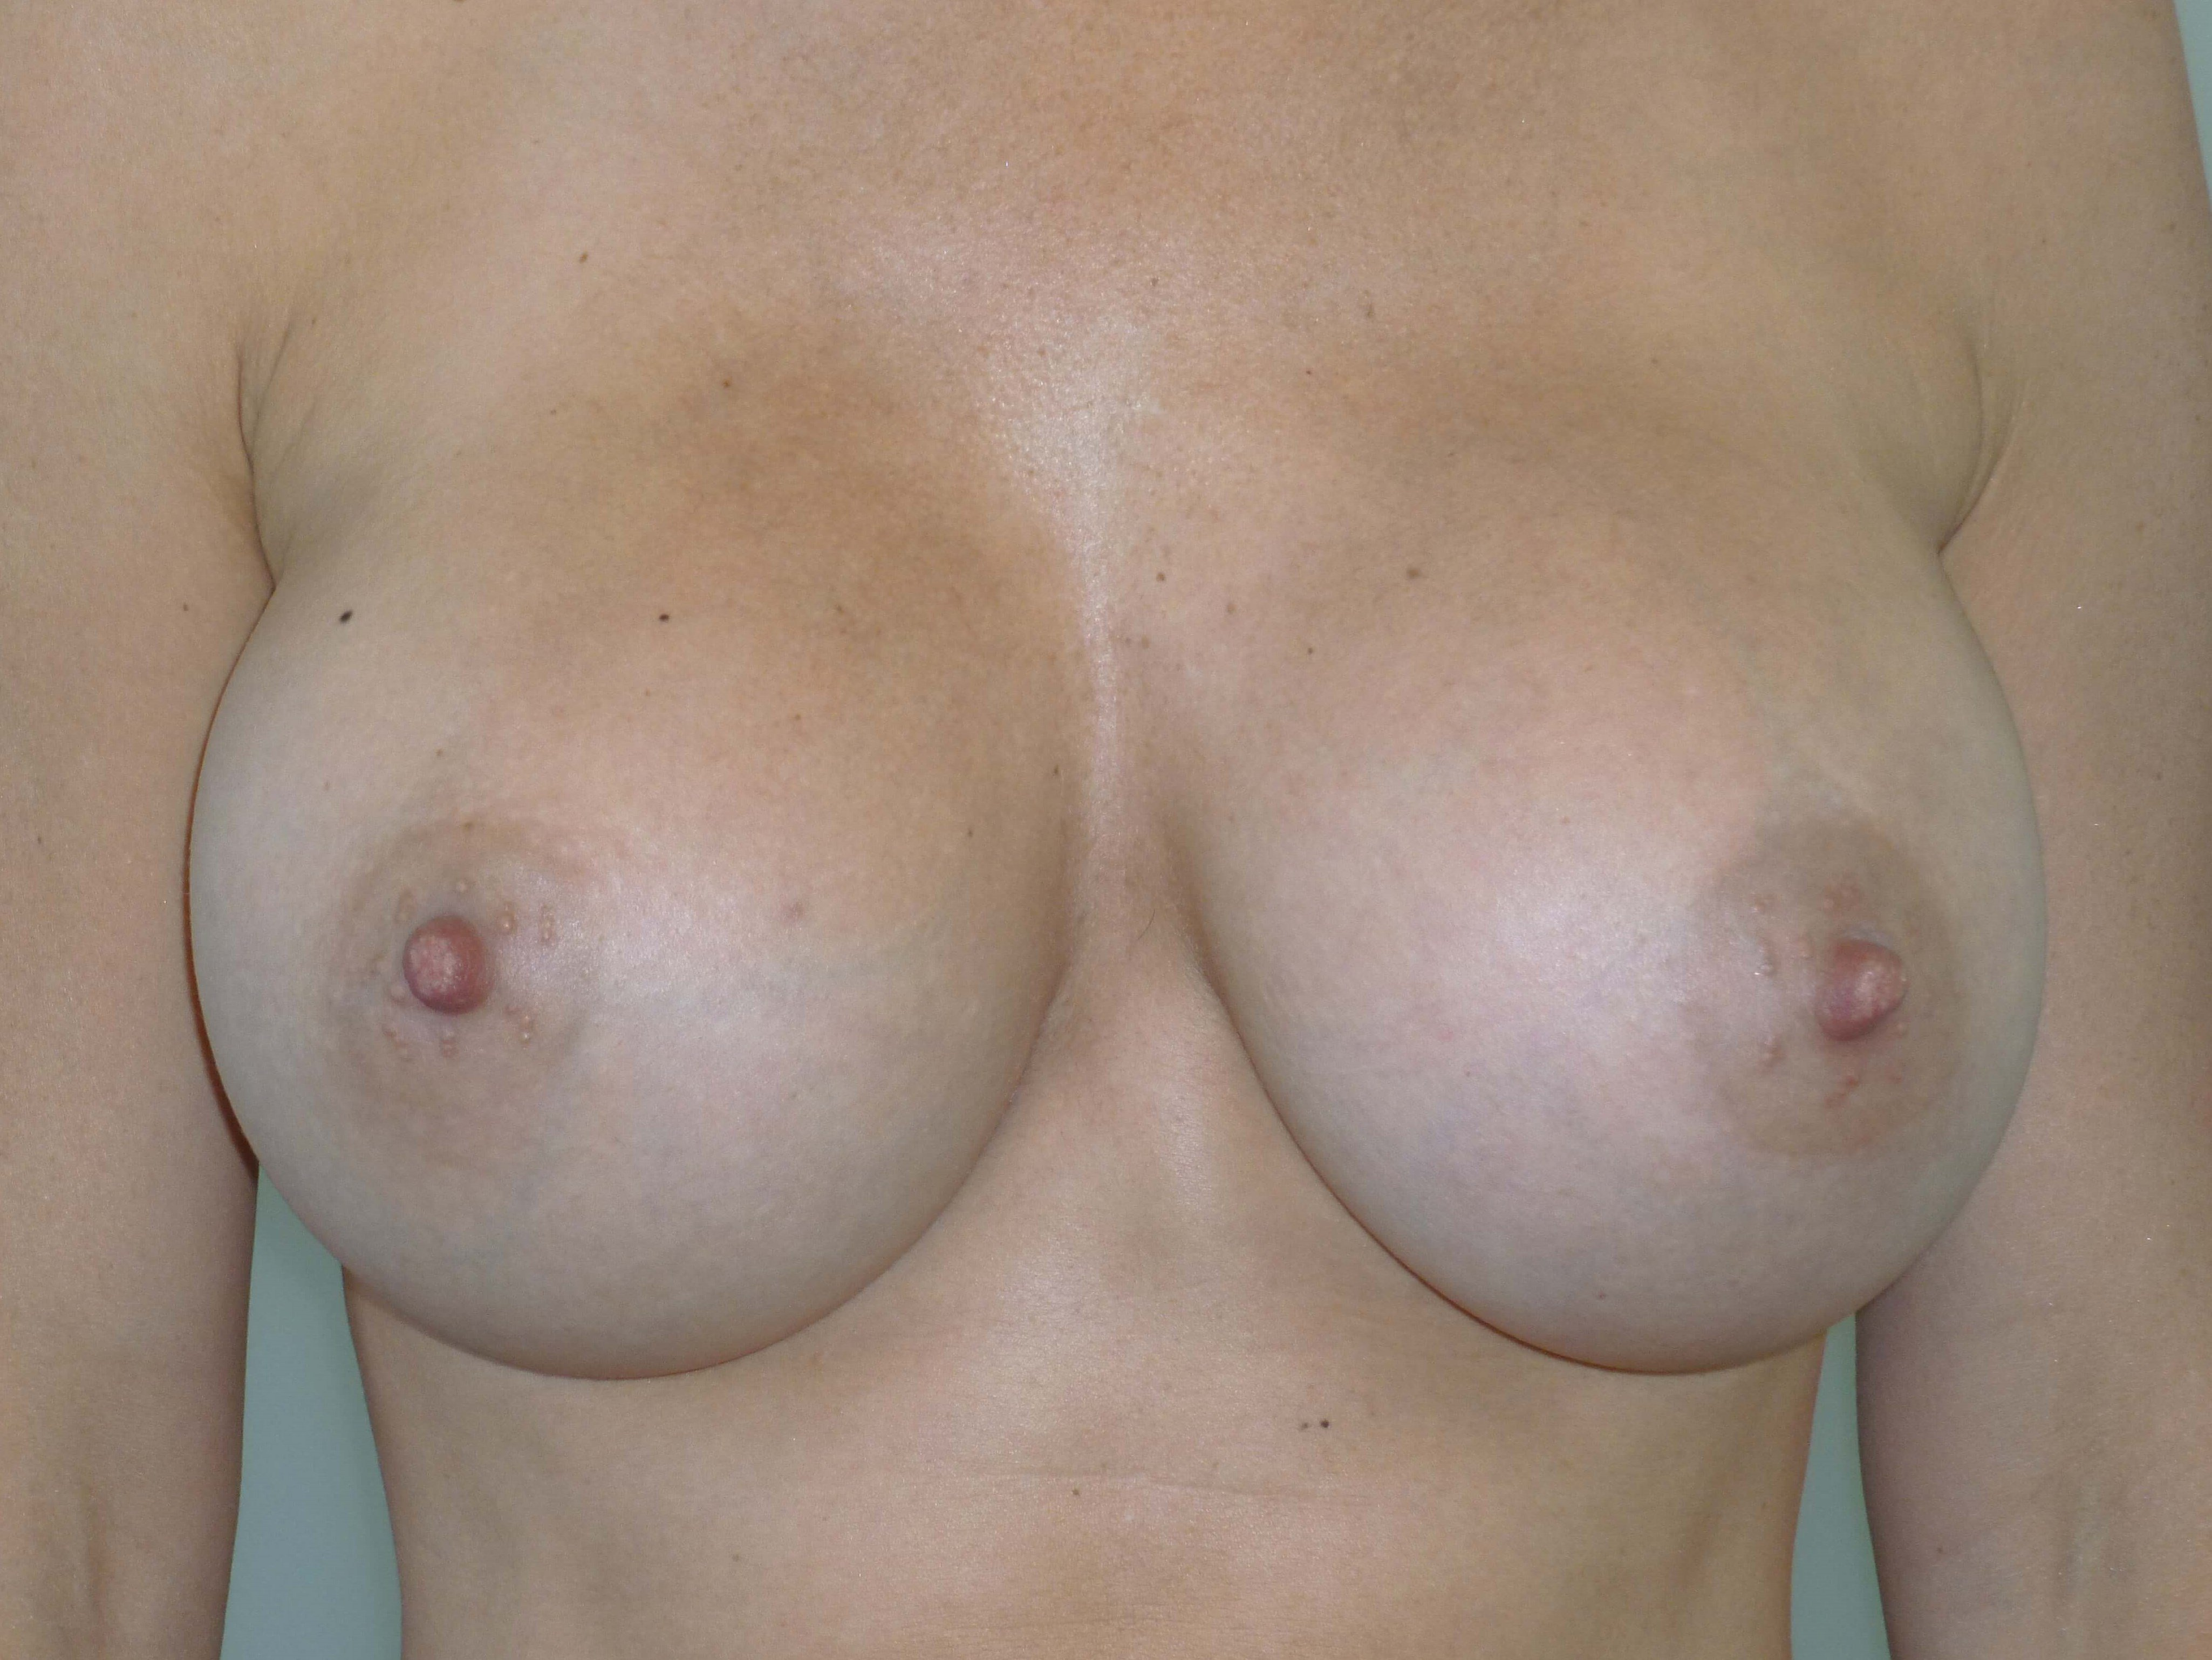 Breast Enhancement After Implants and BodyTite